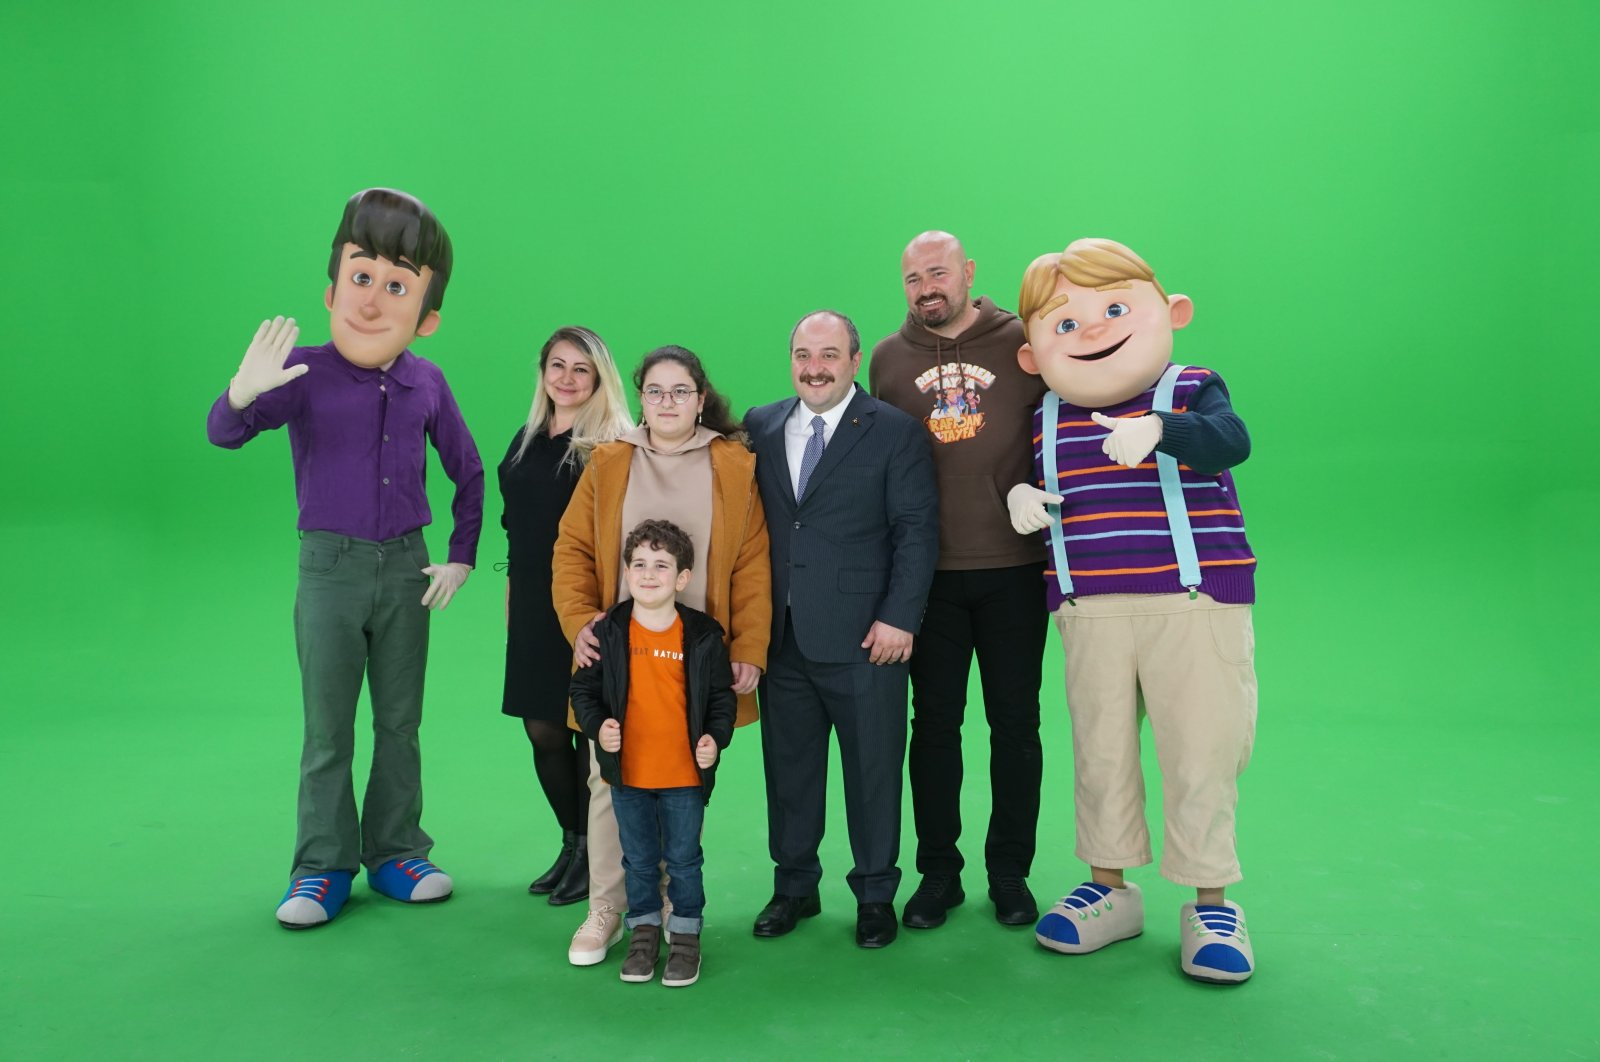 """Industry and Technology Minister Mustafa Varank (C), his two children and """"Rafadan Tayfa"""" producer Ismail Fidan (2nd R) pose with studio employees dressed as famous animated characters, Ankara, Turkey, March 28, 2021. (Photo by Industry and Technology Ministry via AA)"""